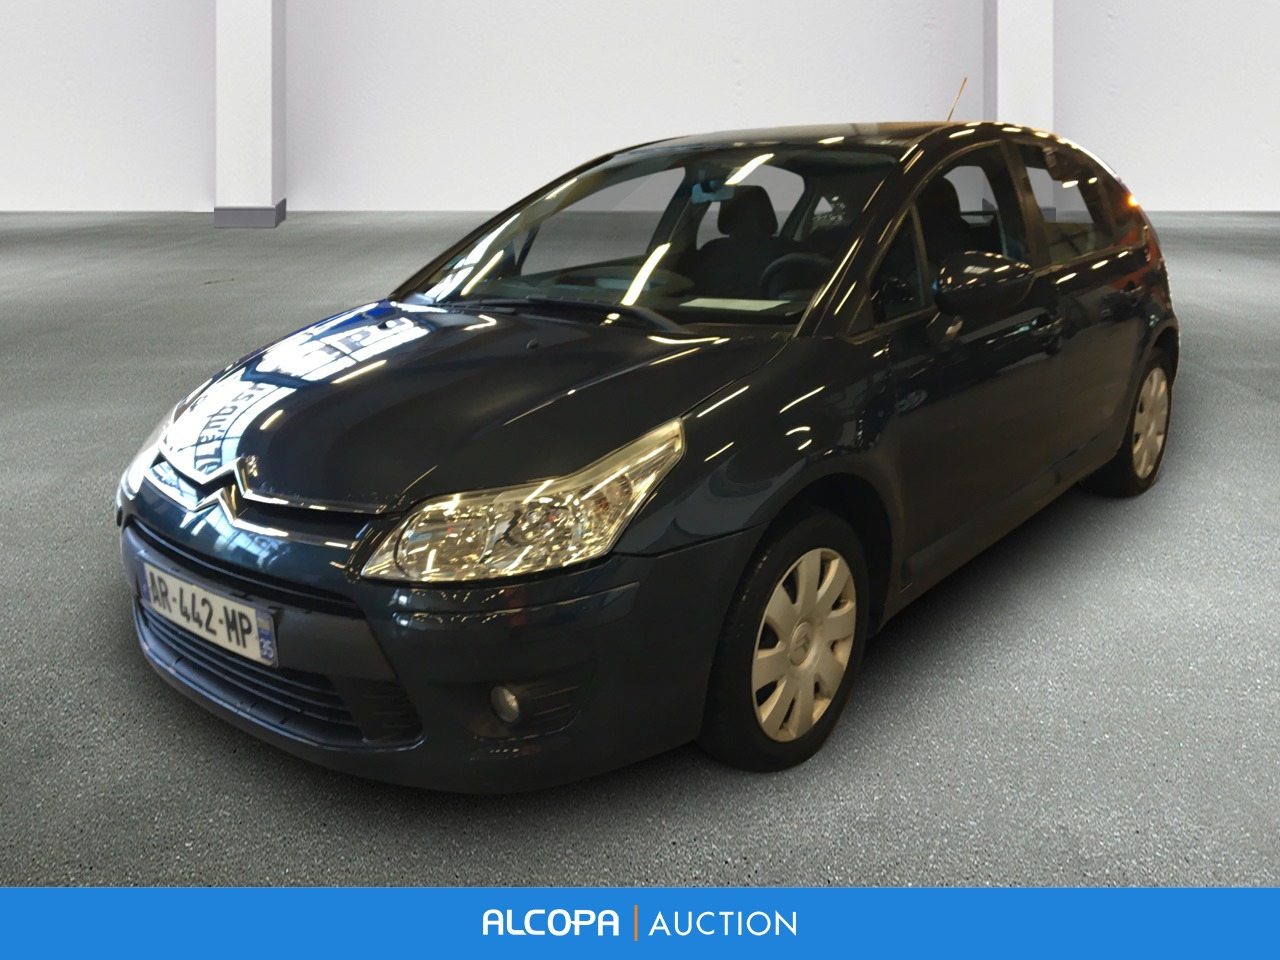 citroen c4 c4 hdi 92 airdream confort rennes alcopa auction. Black Bedroom Furniture Sets. Home Design Ideas